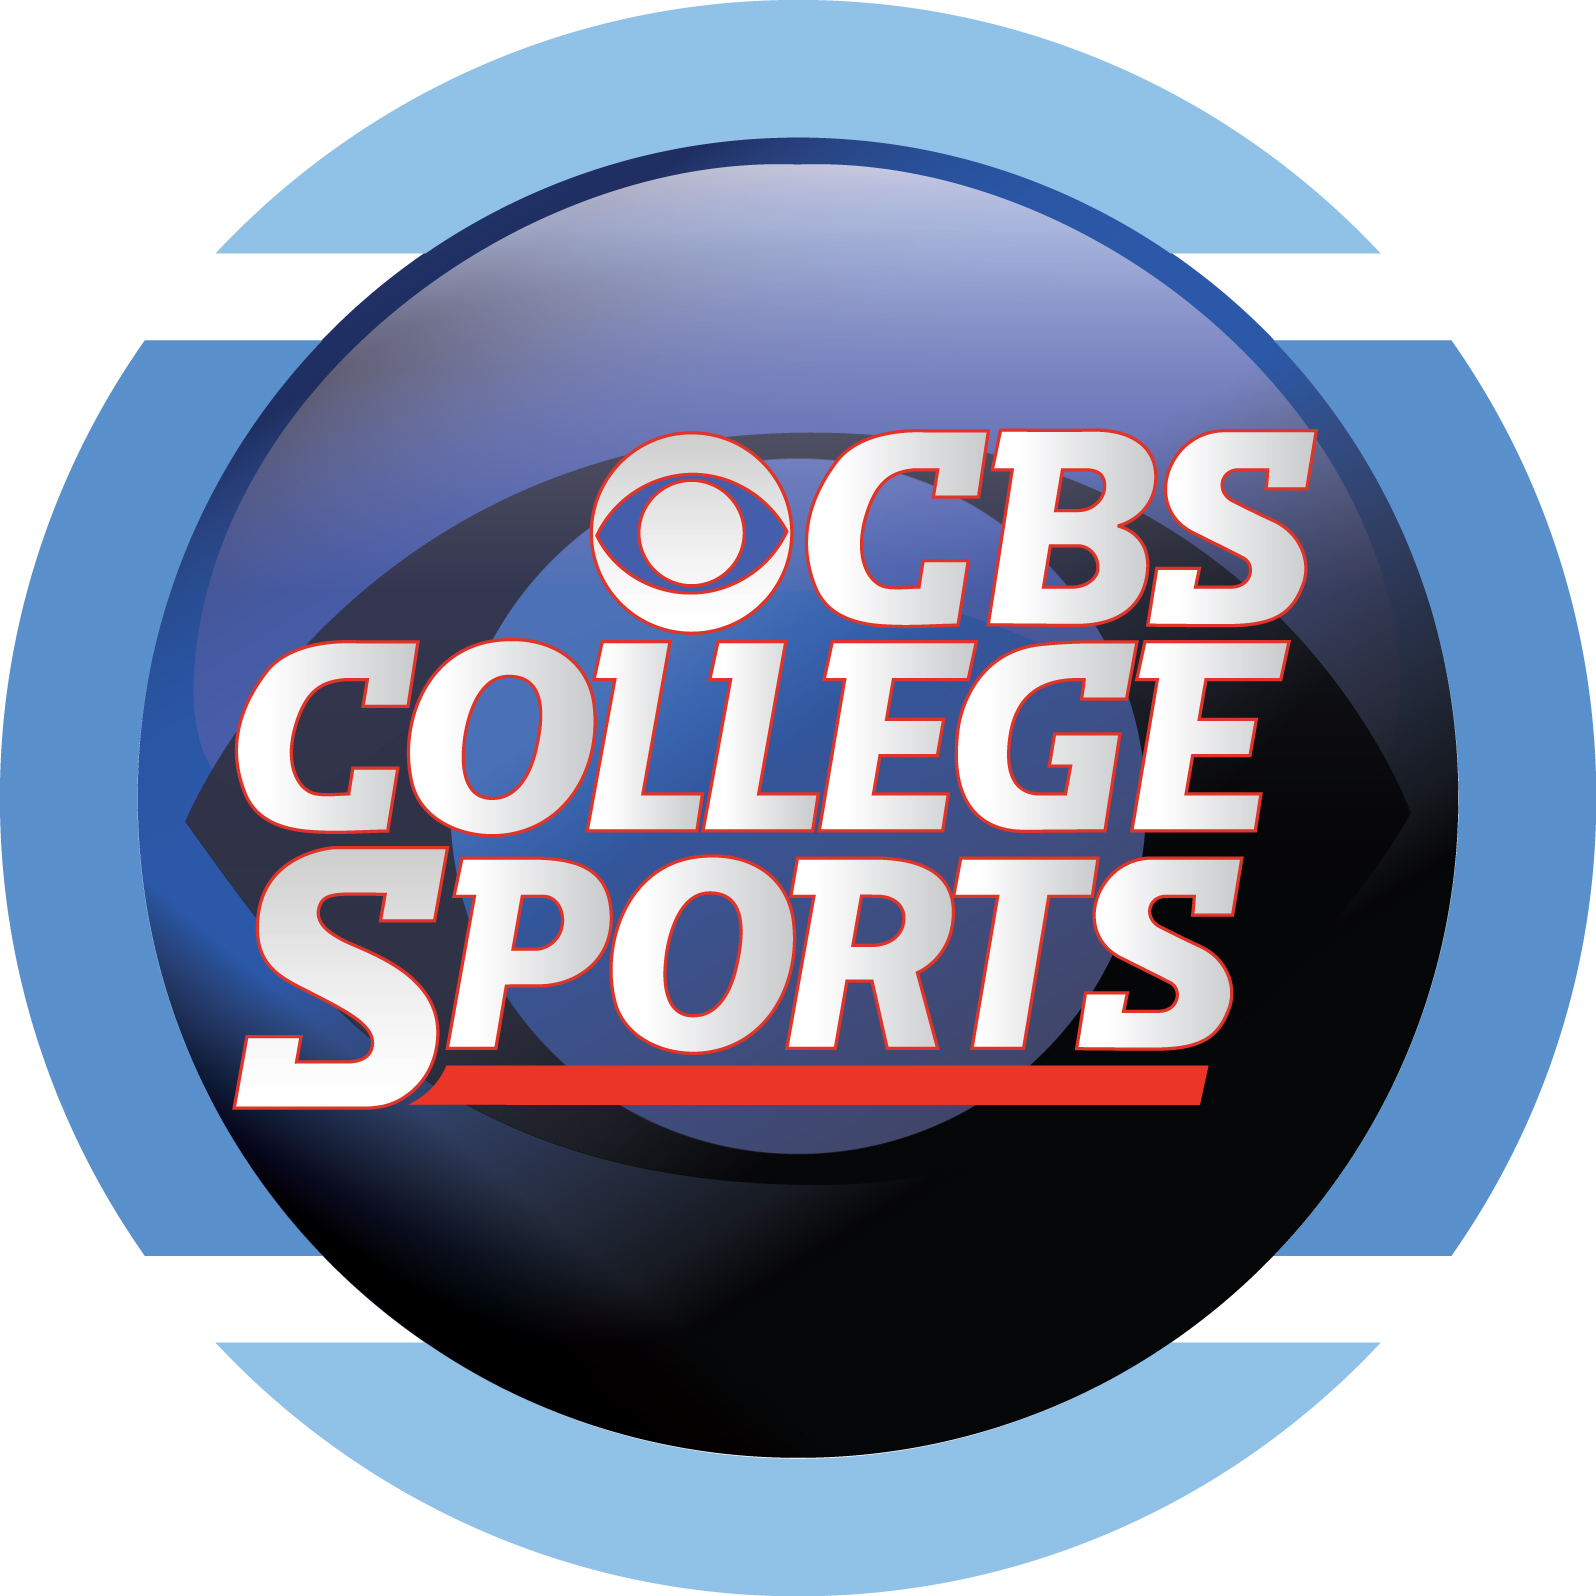 CBS Sports Toolbars for several college teams Cbs sports